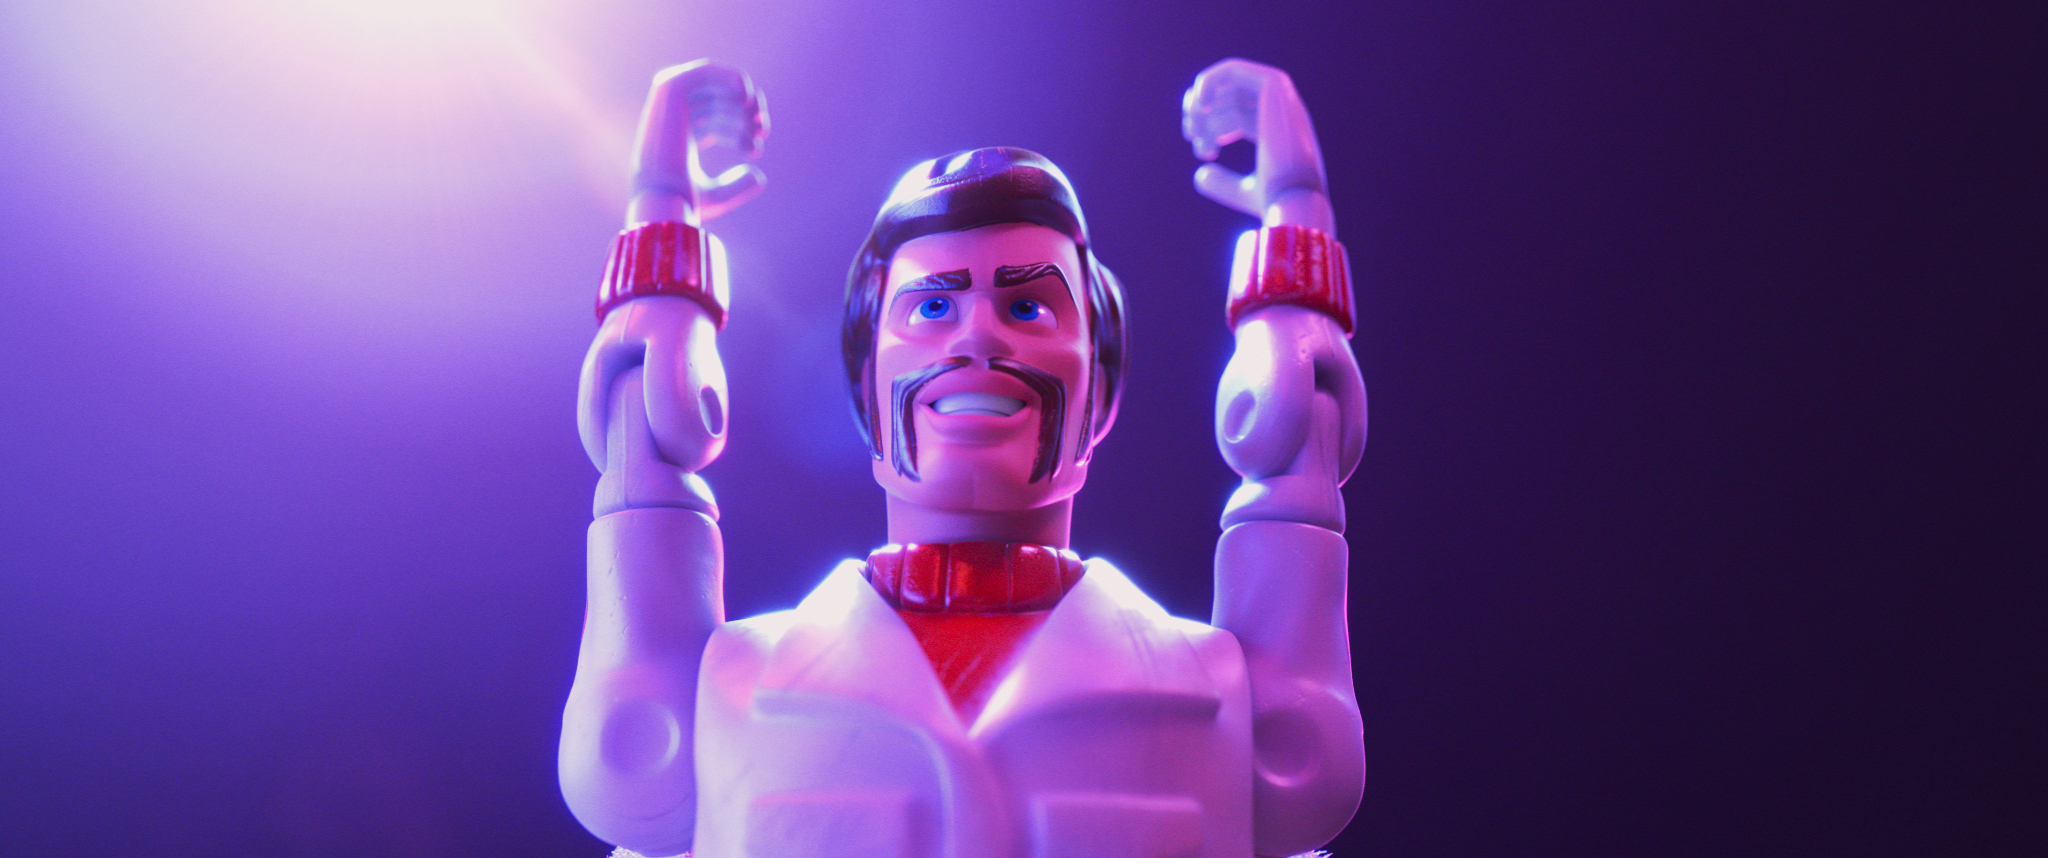 """Duke Caboom (Keanu Reeves) in a scene from """"Toy Story 4."""""""